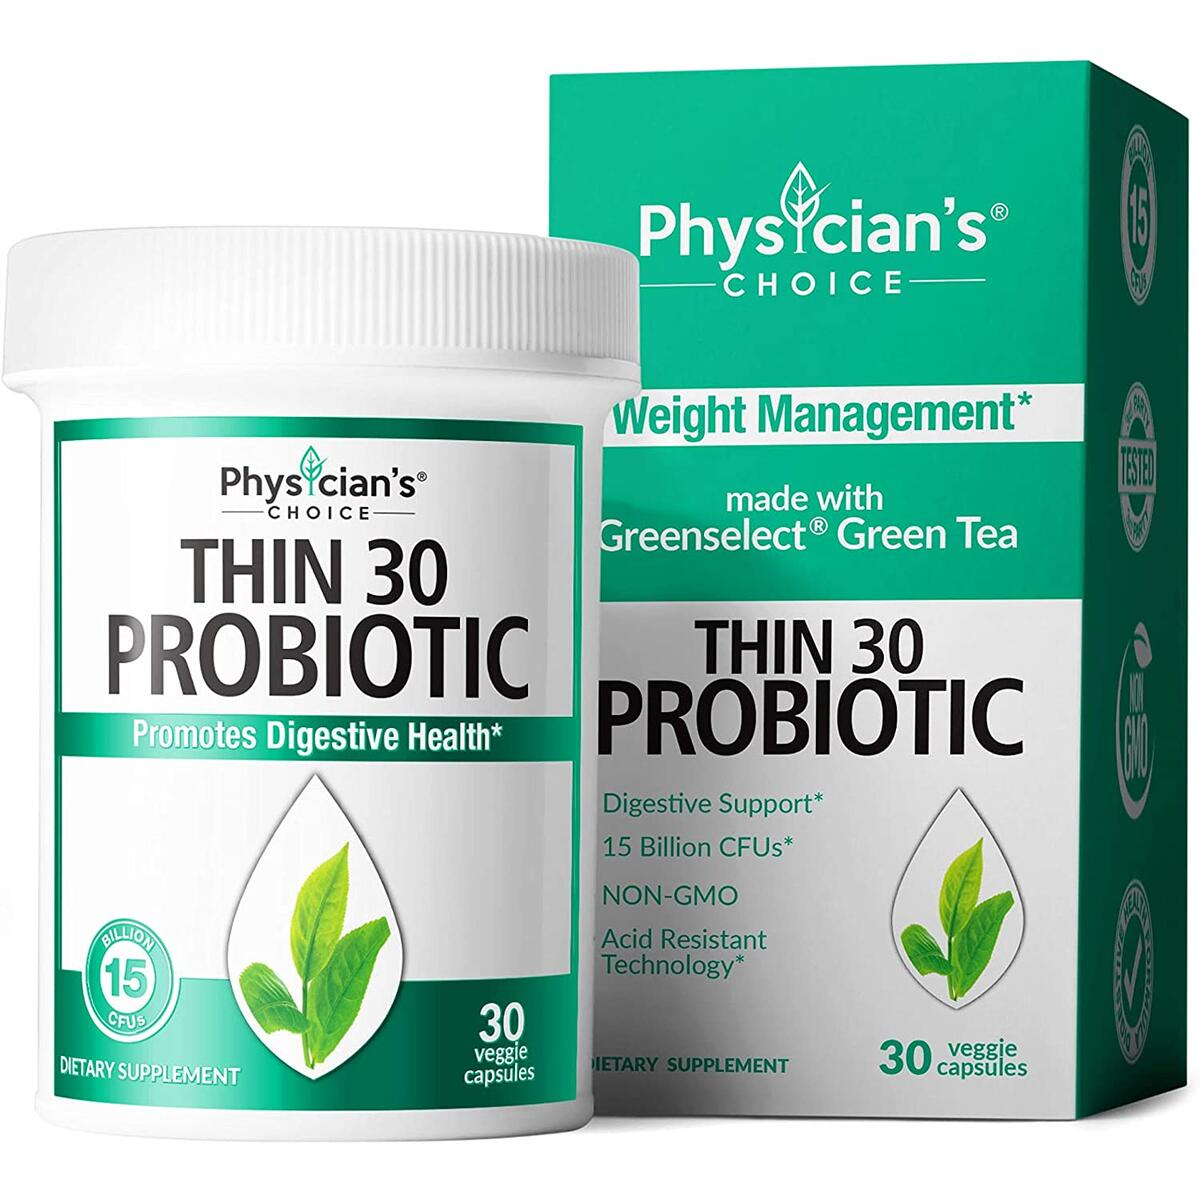 Thin 30 Probiotics from Physician's Choice